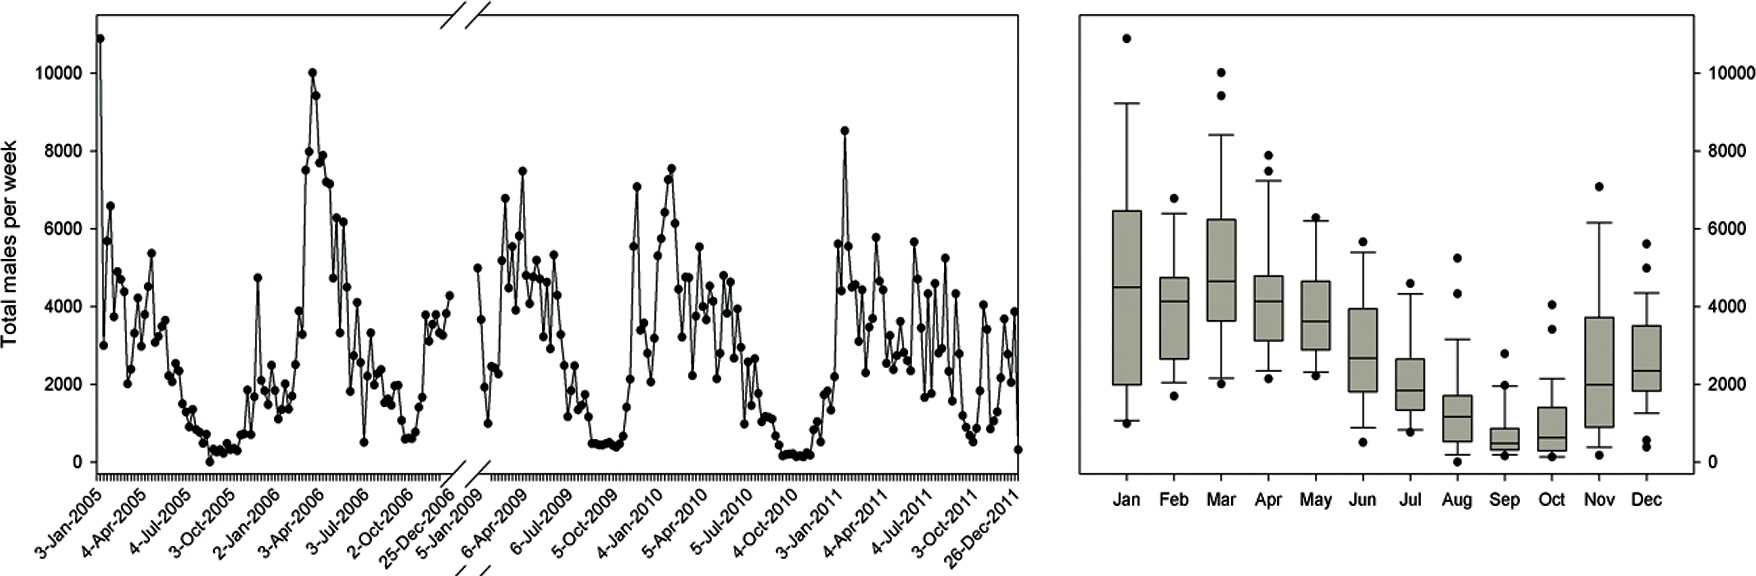 Figure 1: Temporal abundance of B. dorsalis in Morogoro